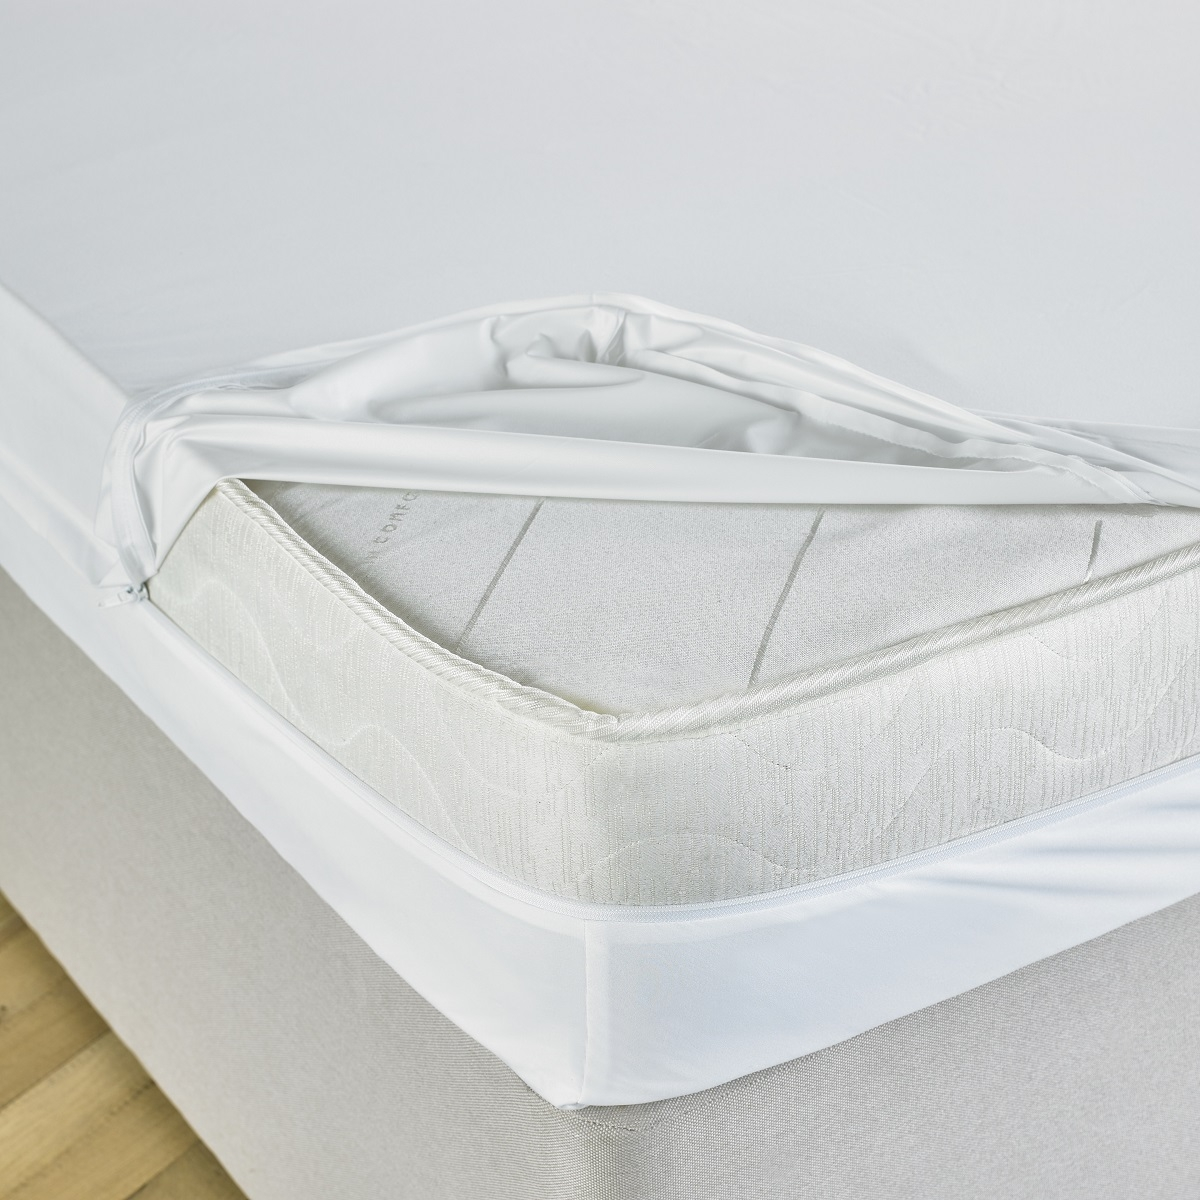 Antibacterial Mattress Encasement